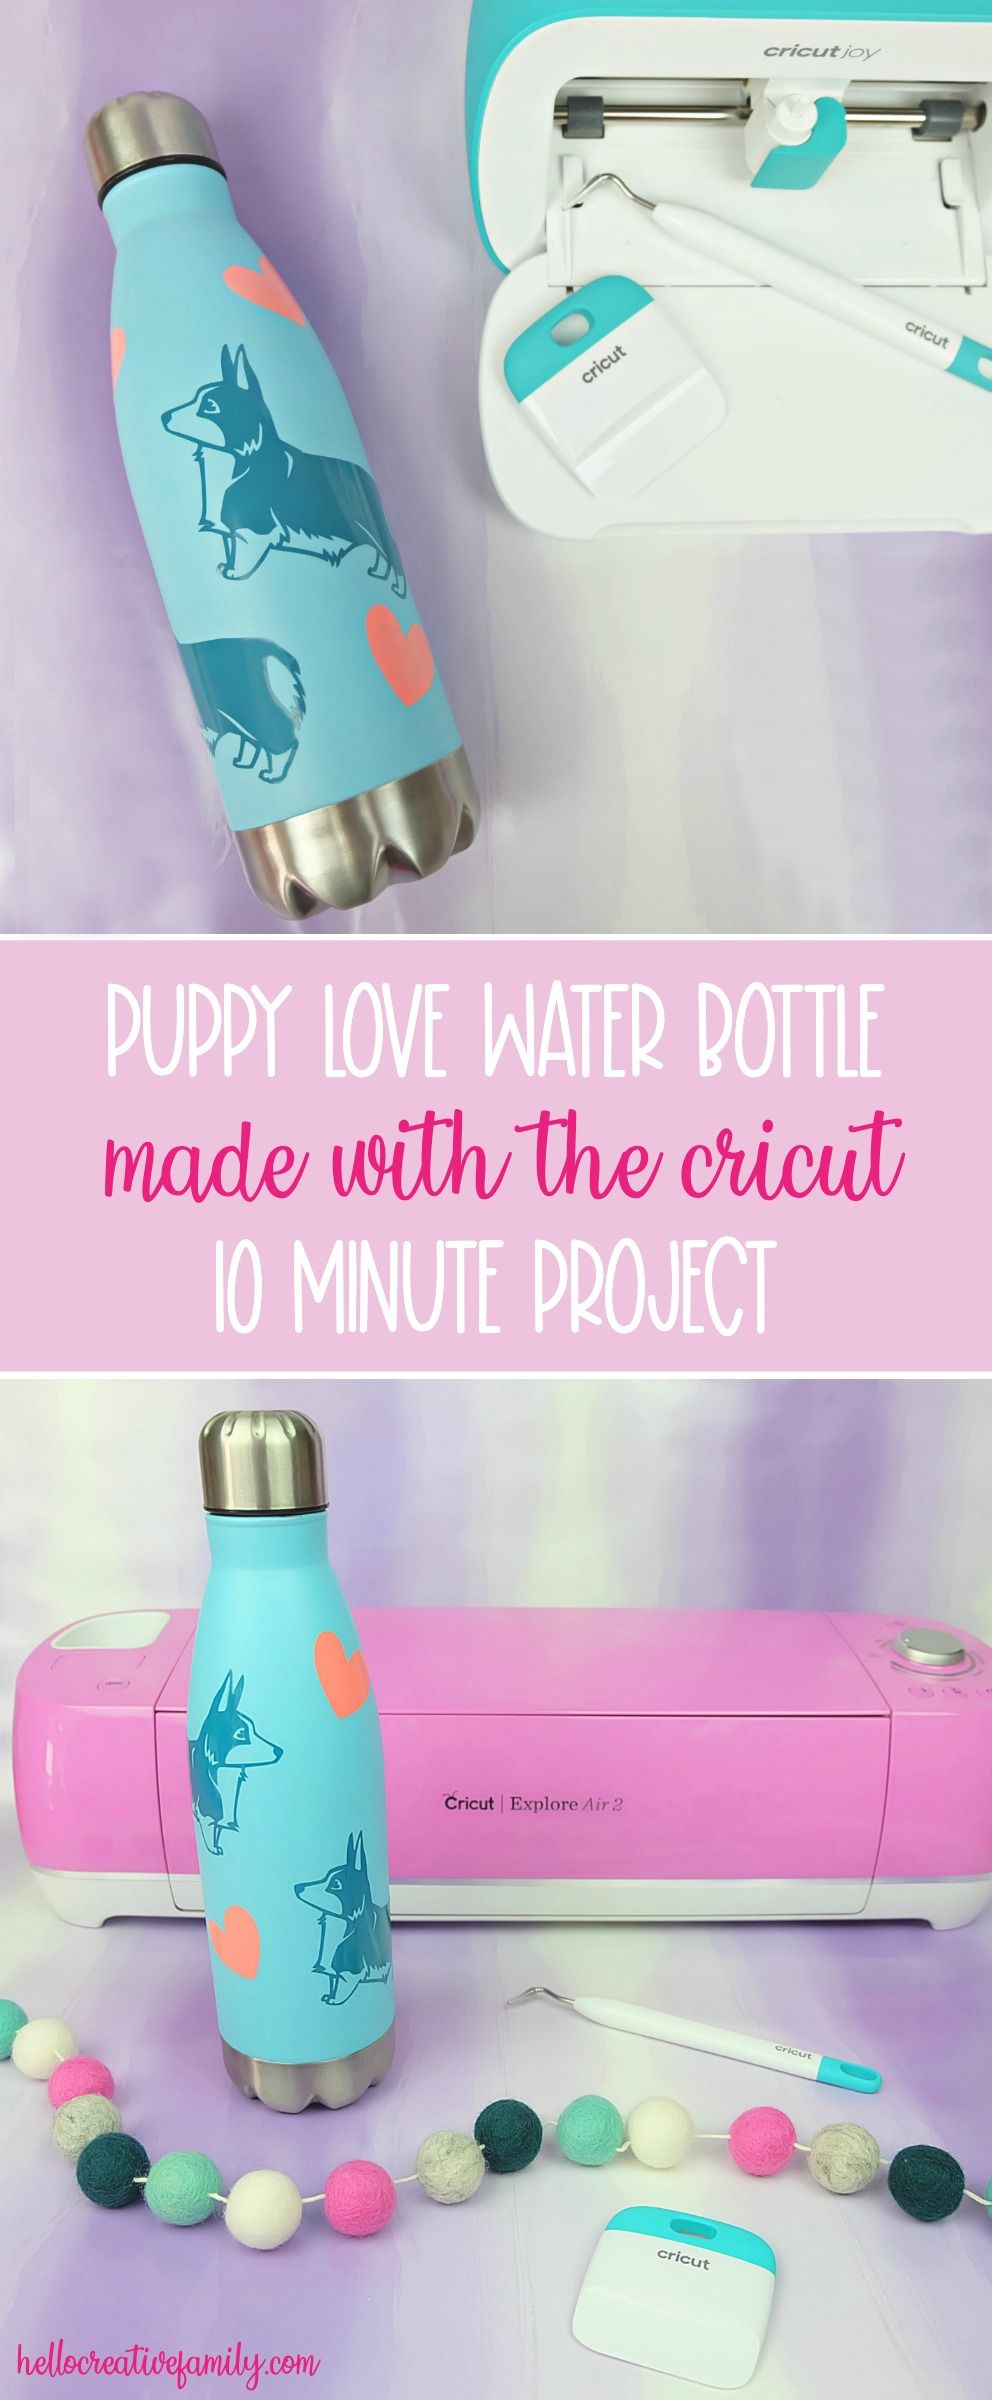 27++ Cricut make something you love events ideas in 2021